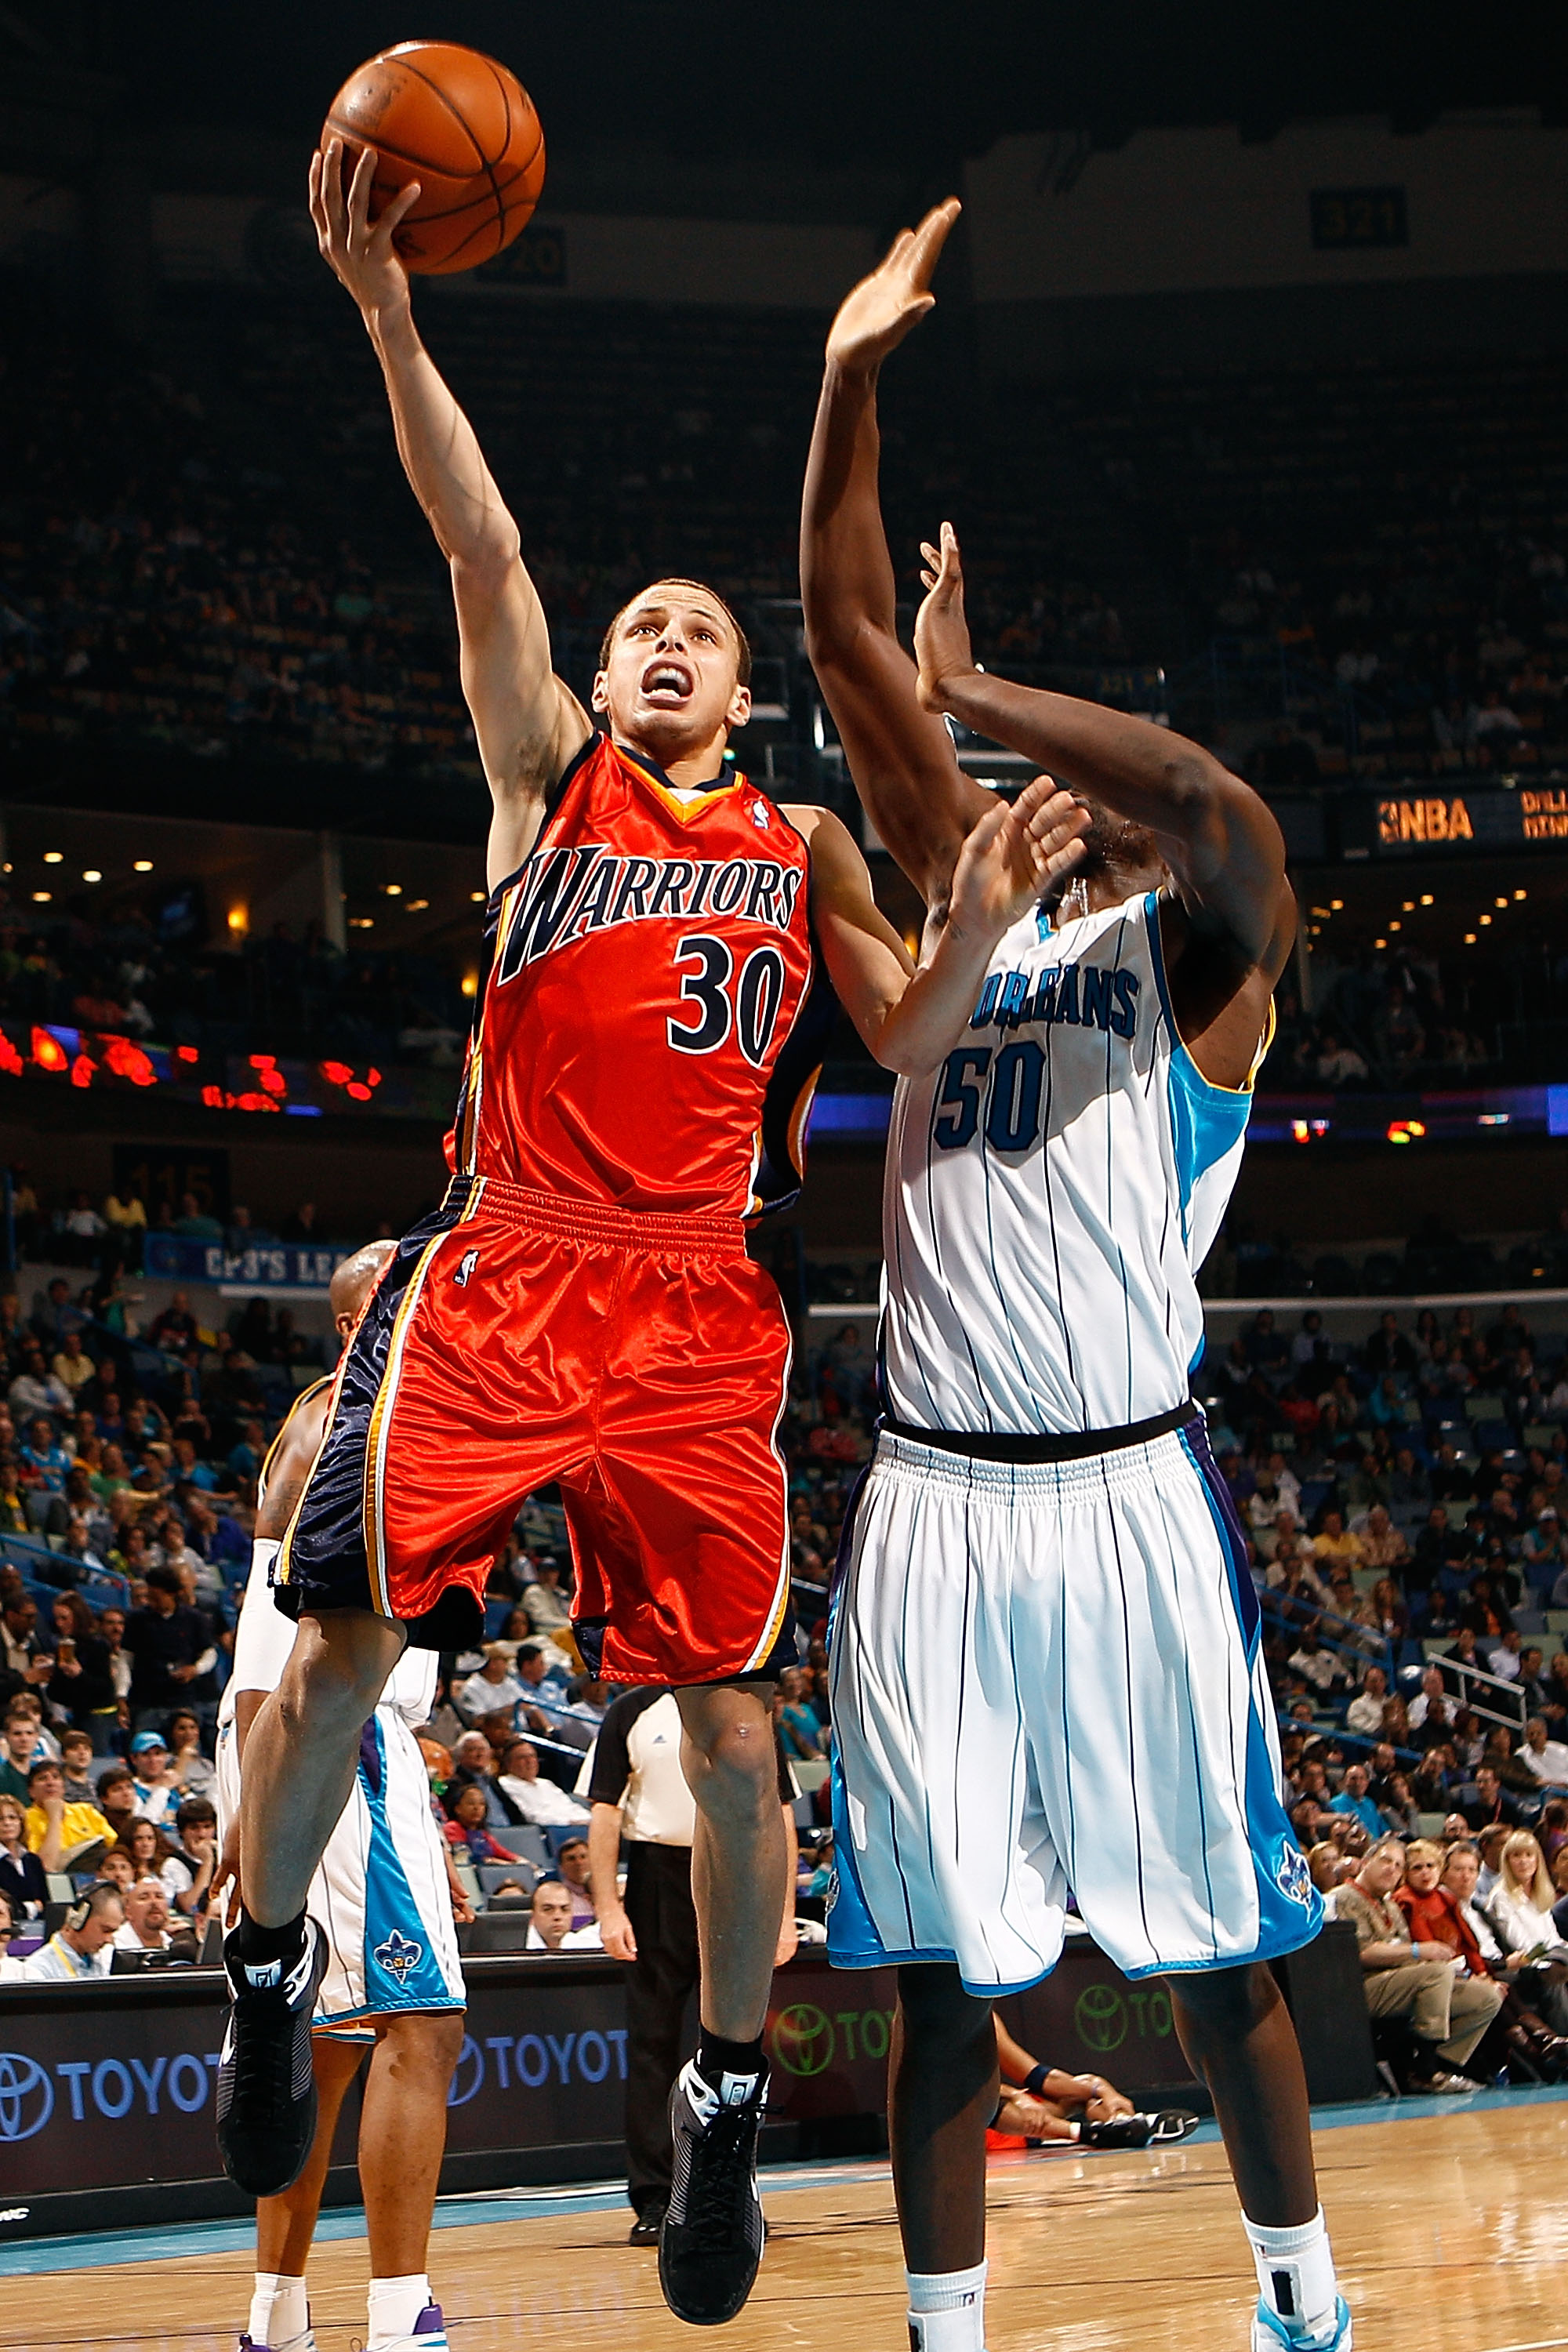 Steph Curry surpassed Ellis as the face of the organization with his play during his rookie season.